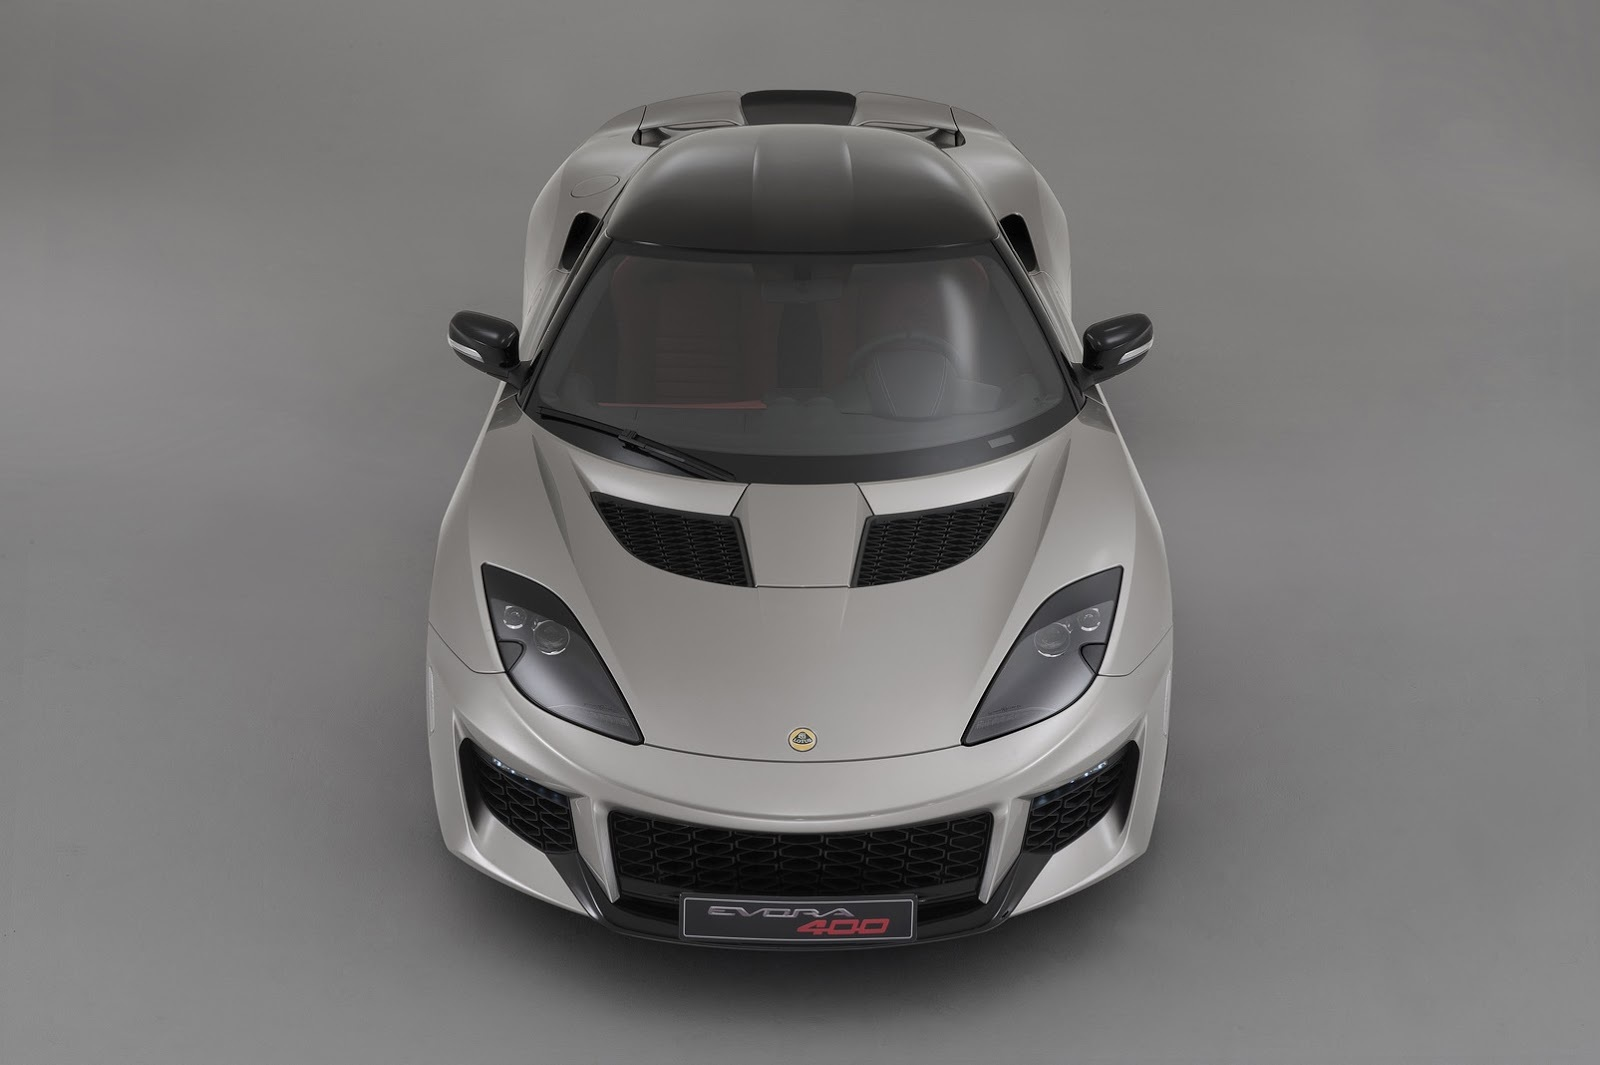 Lotus Evora Facelift (2015) 7